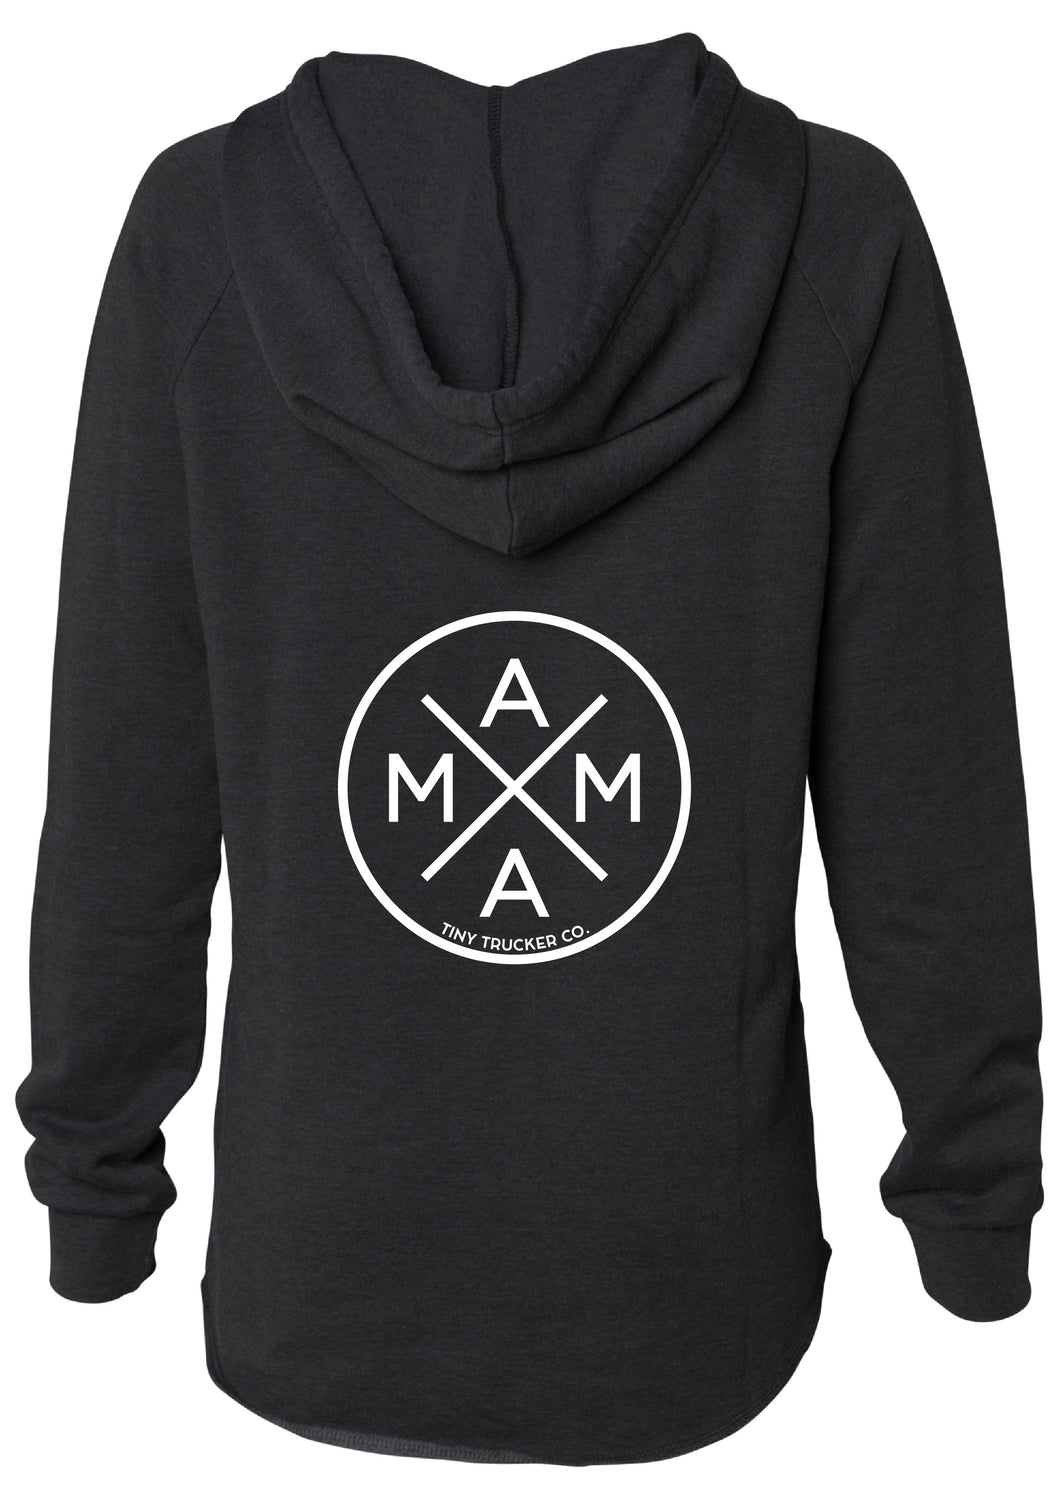 MAMA X ™ V-NECK SWEATSHIRT - BLACK